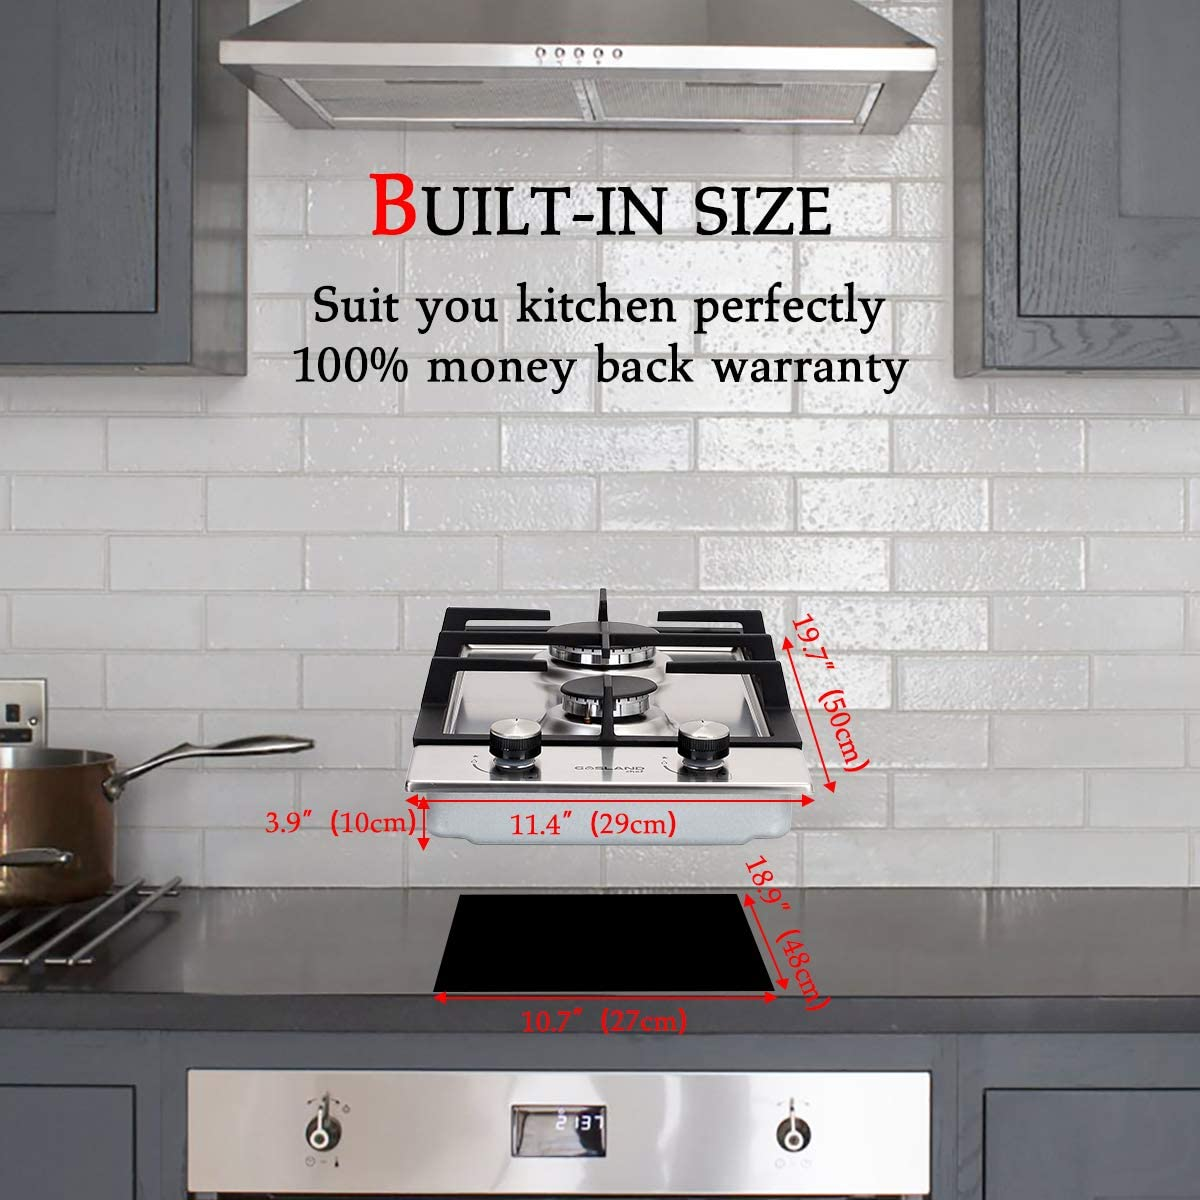 2 Burner Drop-in Propane//Natural Gas Cooker 12 Inch Stainless Steel Gas Stove Top GASLAND Chef 12 Built-in Gas Cooktops